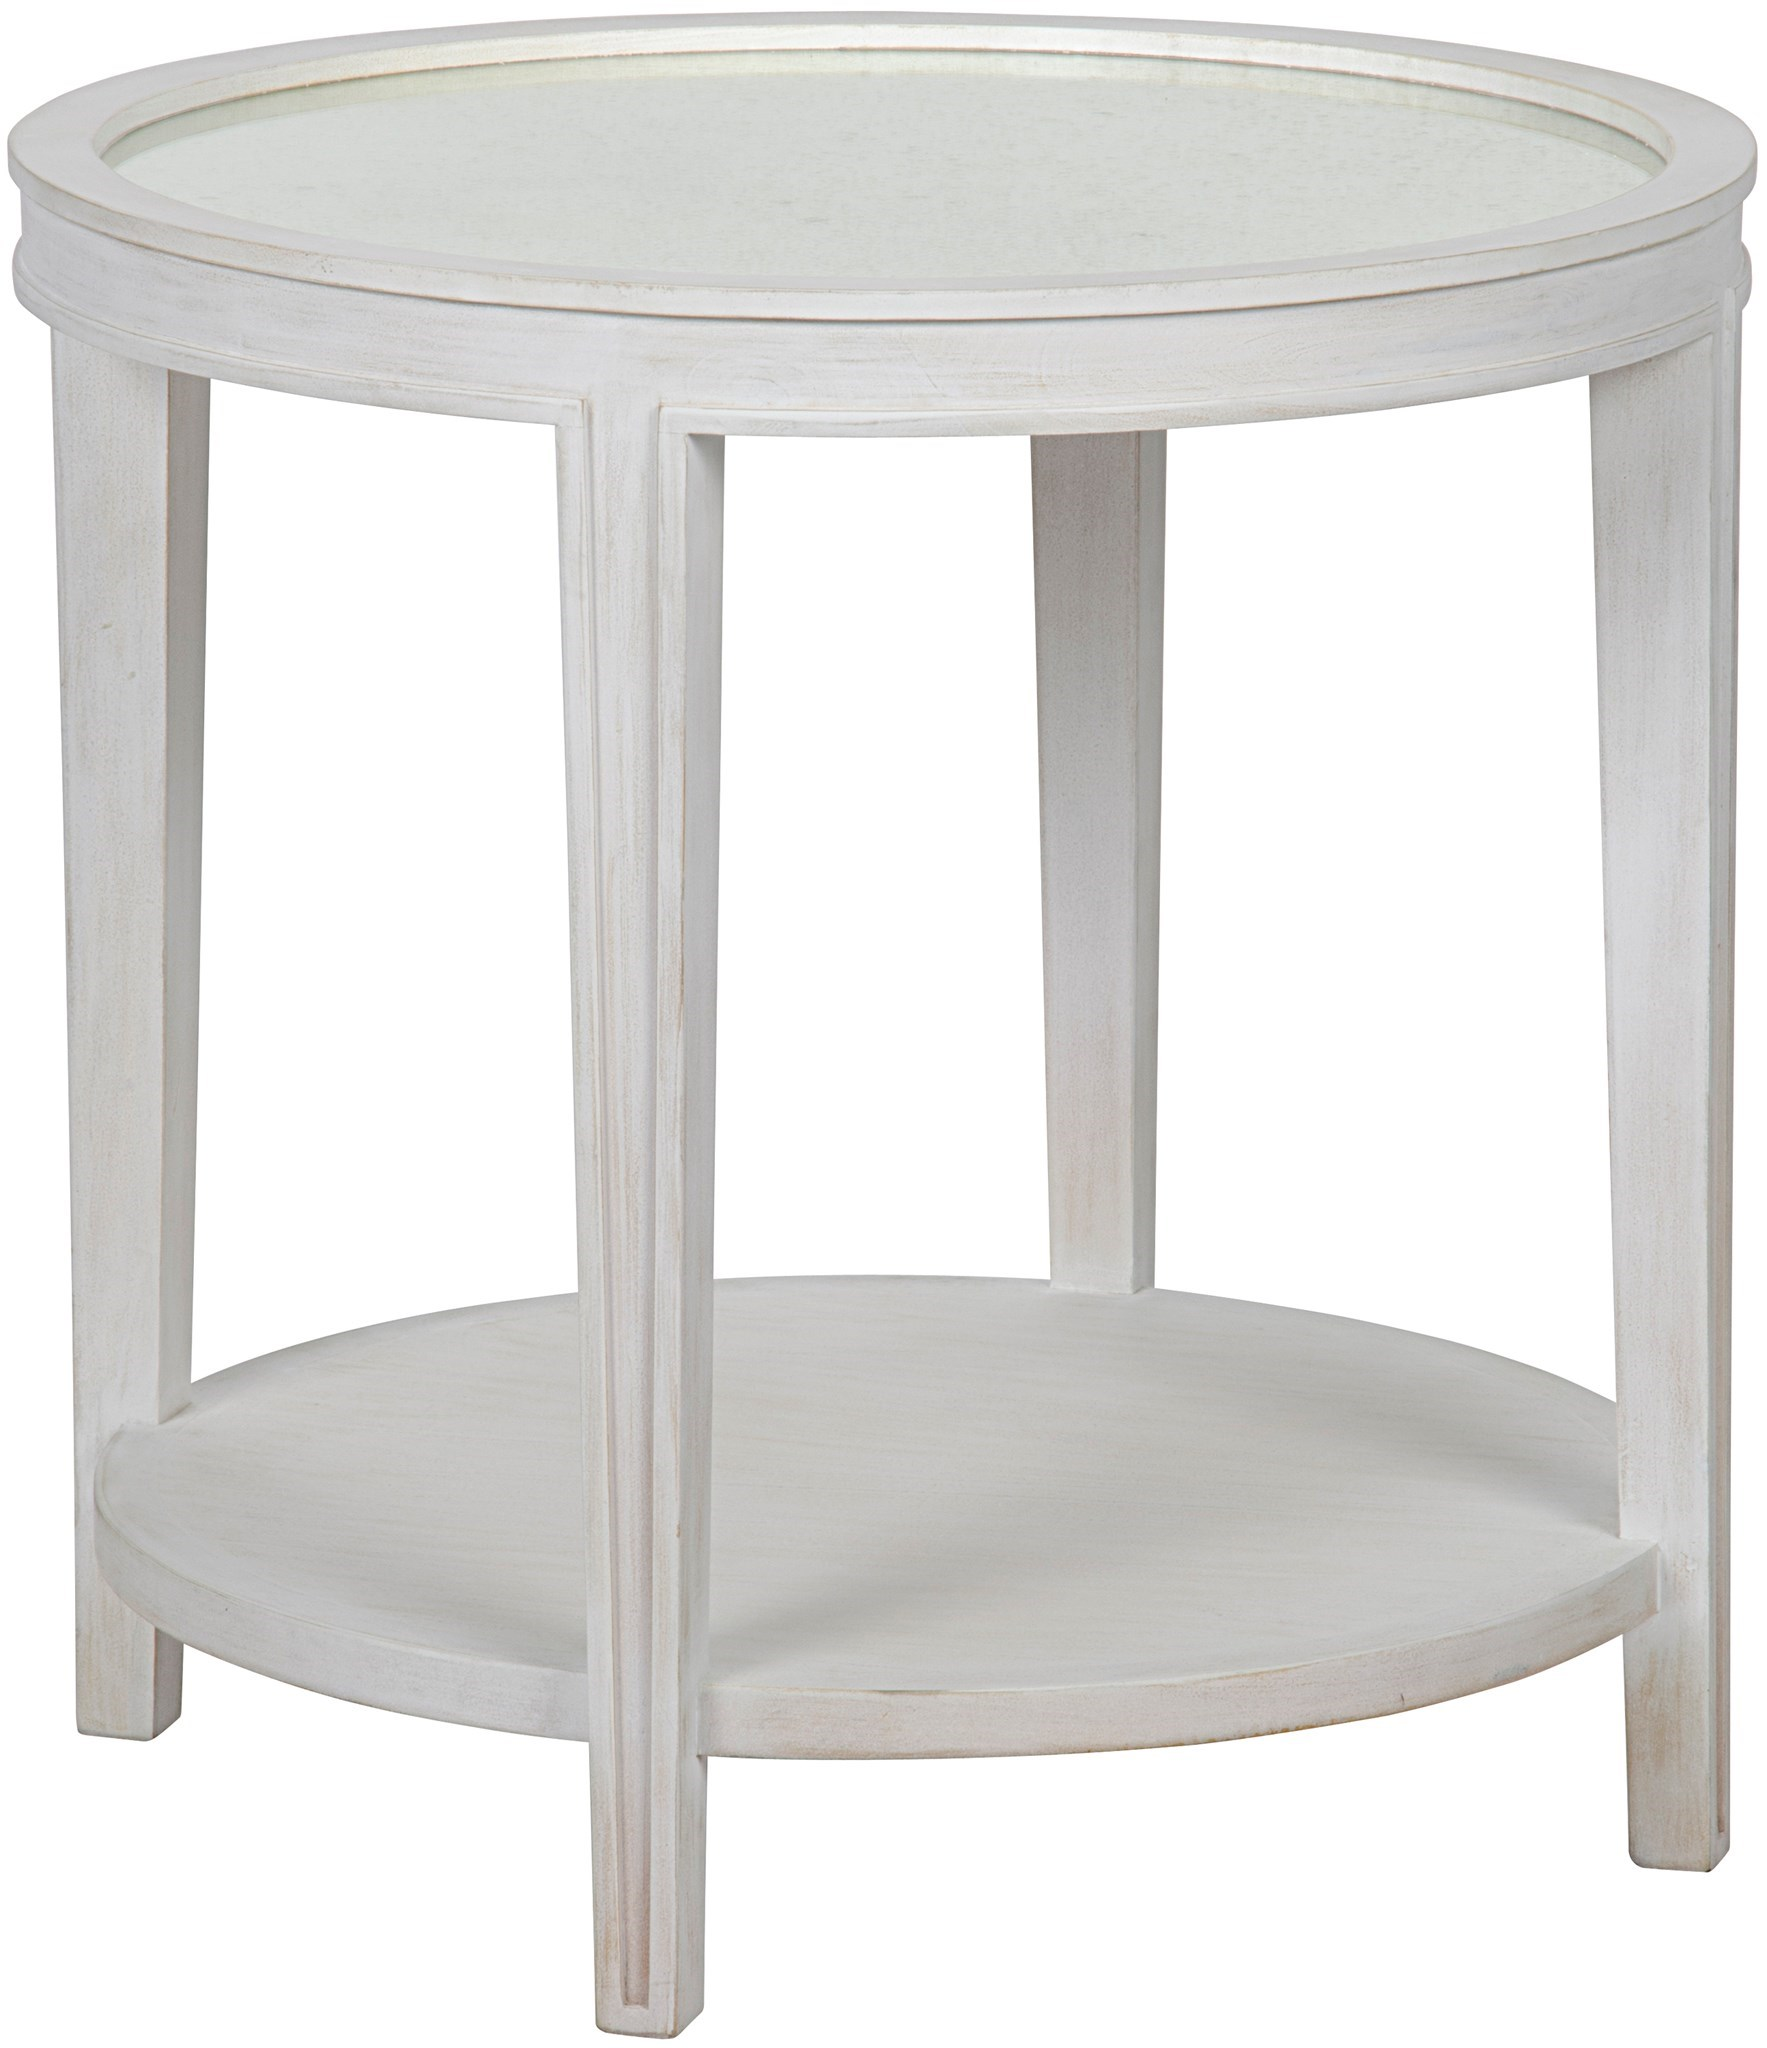 imperial side table white wash accent tables noir whitewash small night lamps outdoor cart dining room sets acrylic coffee wedding linens wood glass end clearance kitchen chairs